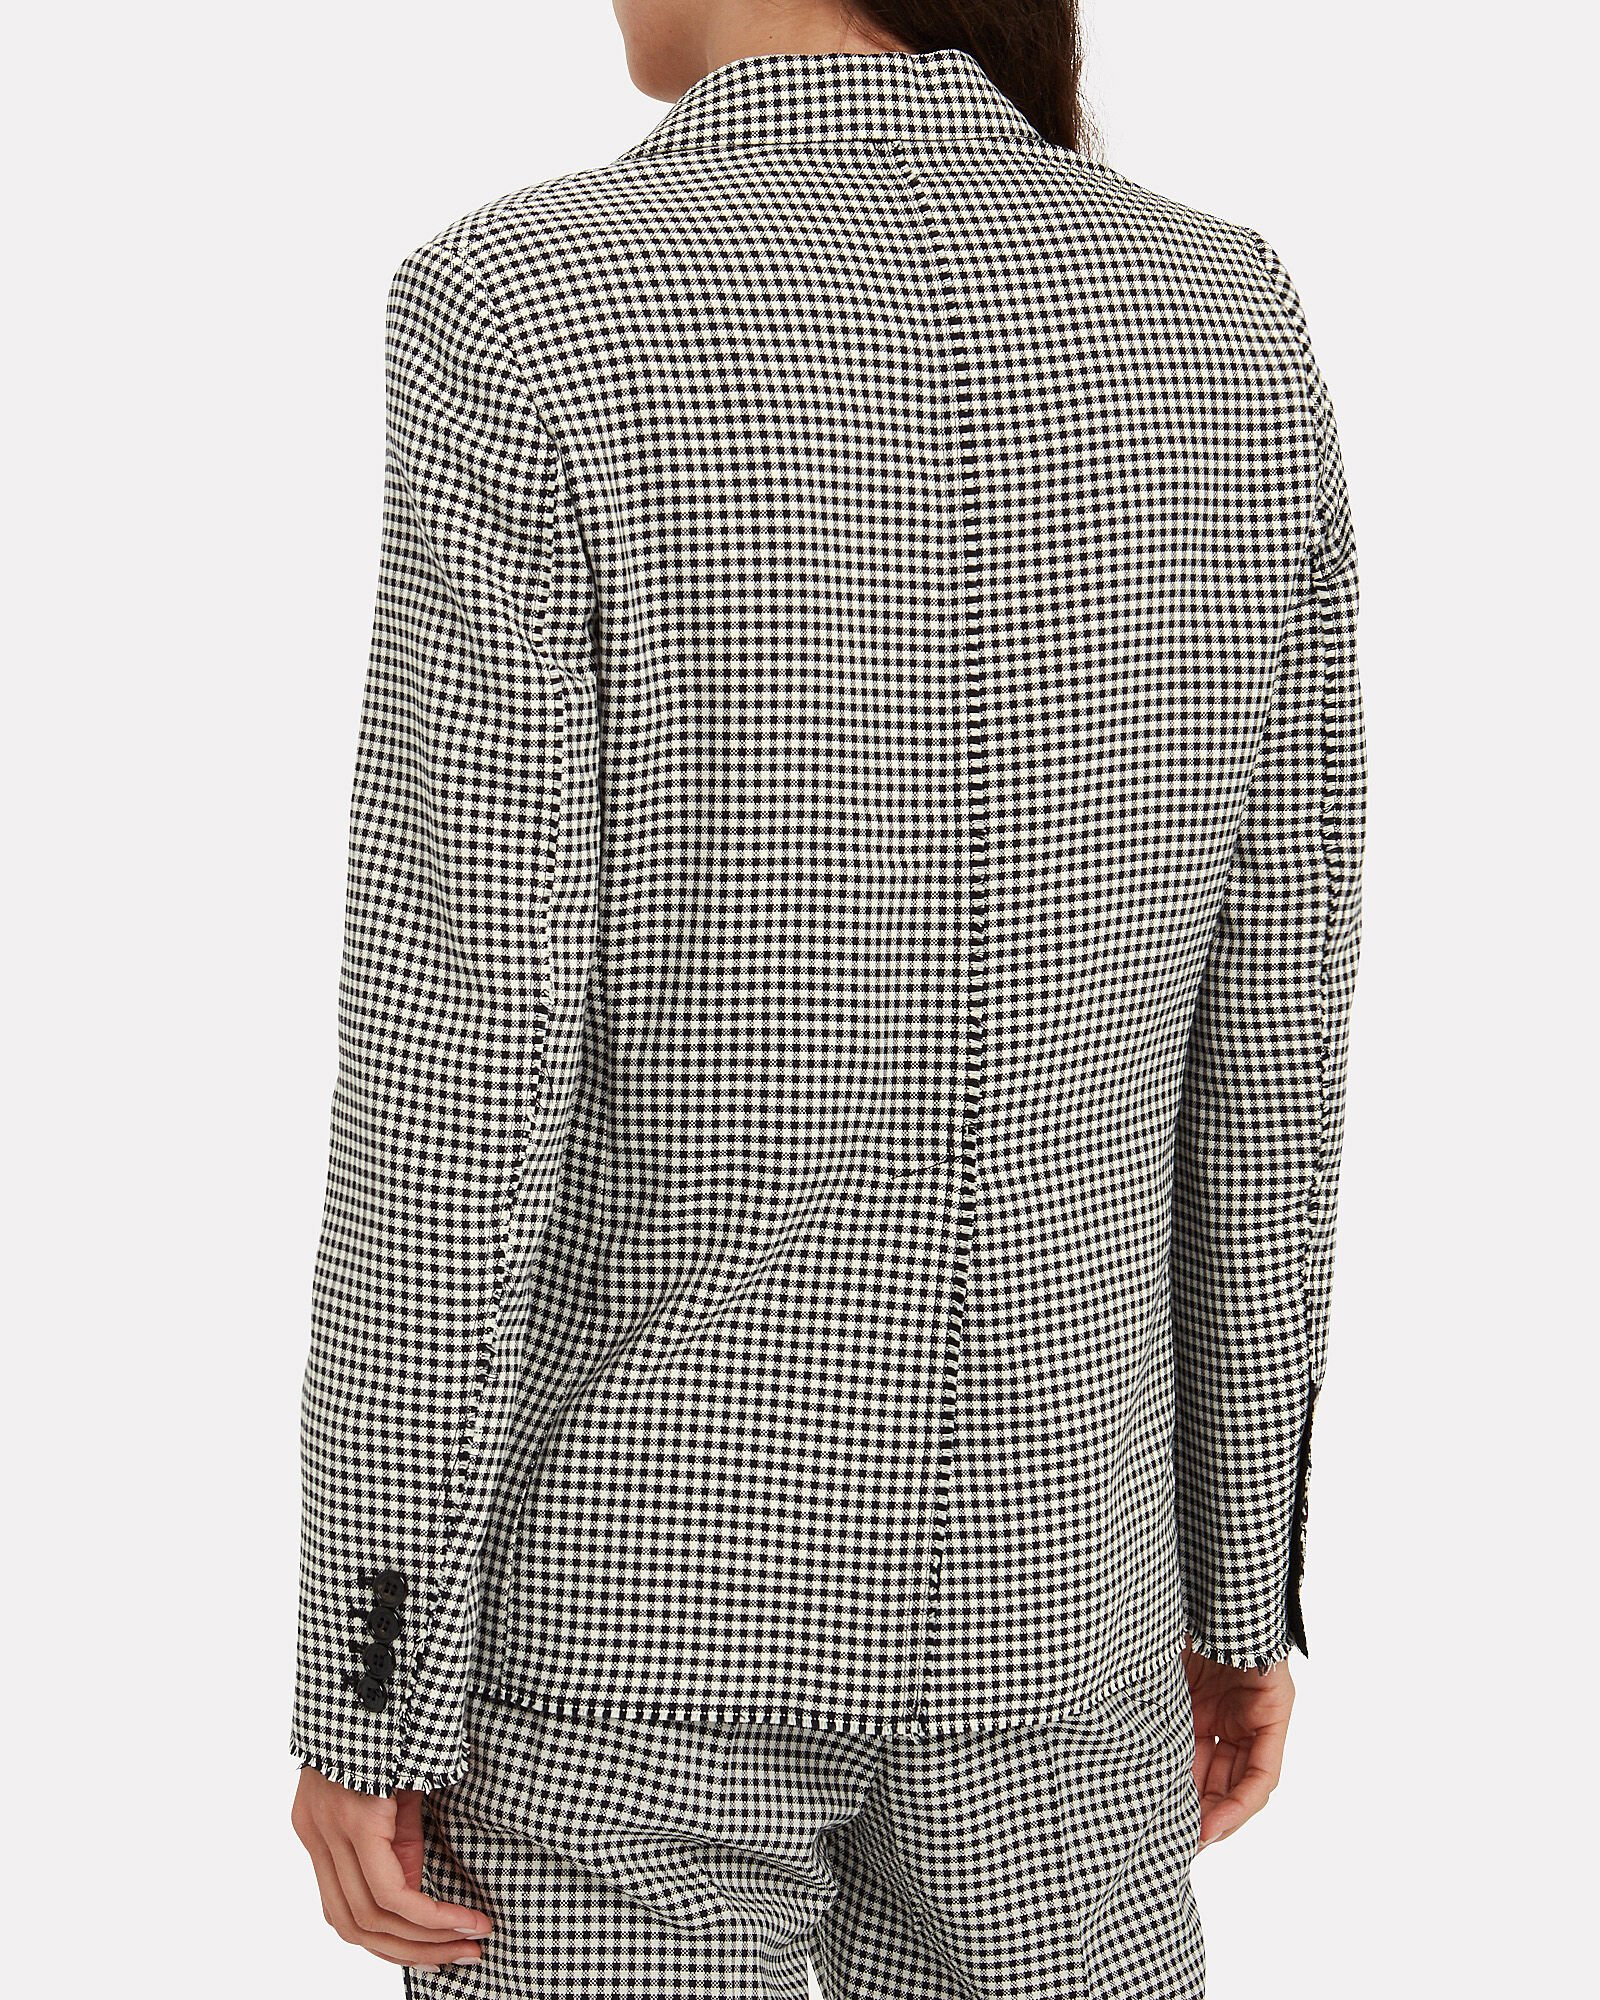 Golden Checked Wool-Cotton Blazer, BLK/WHT, hi-res